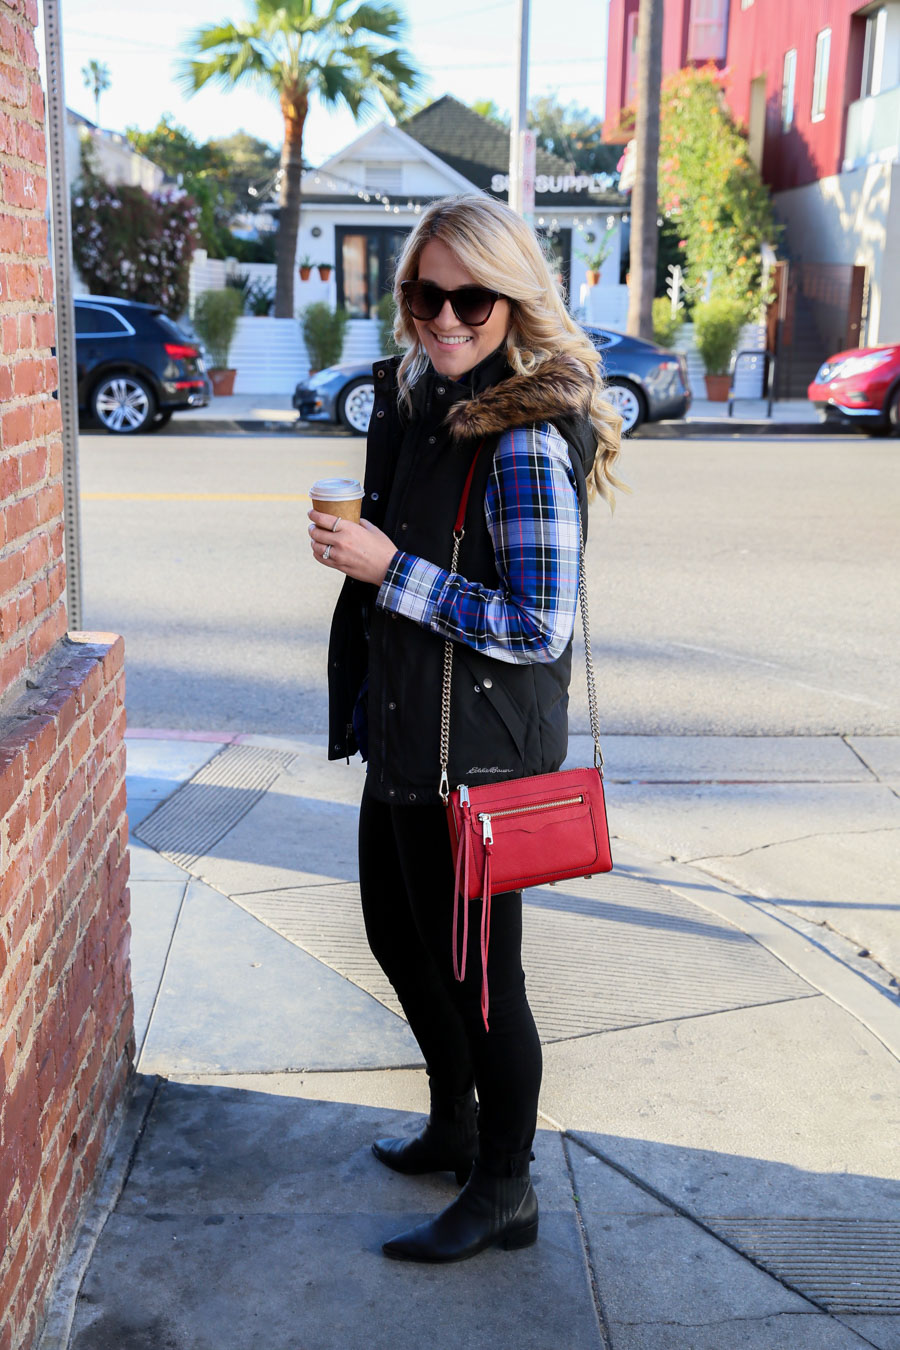 Plaid Shirt with Black Vest Outfit with Red Purse